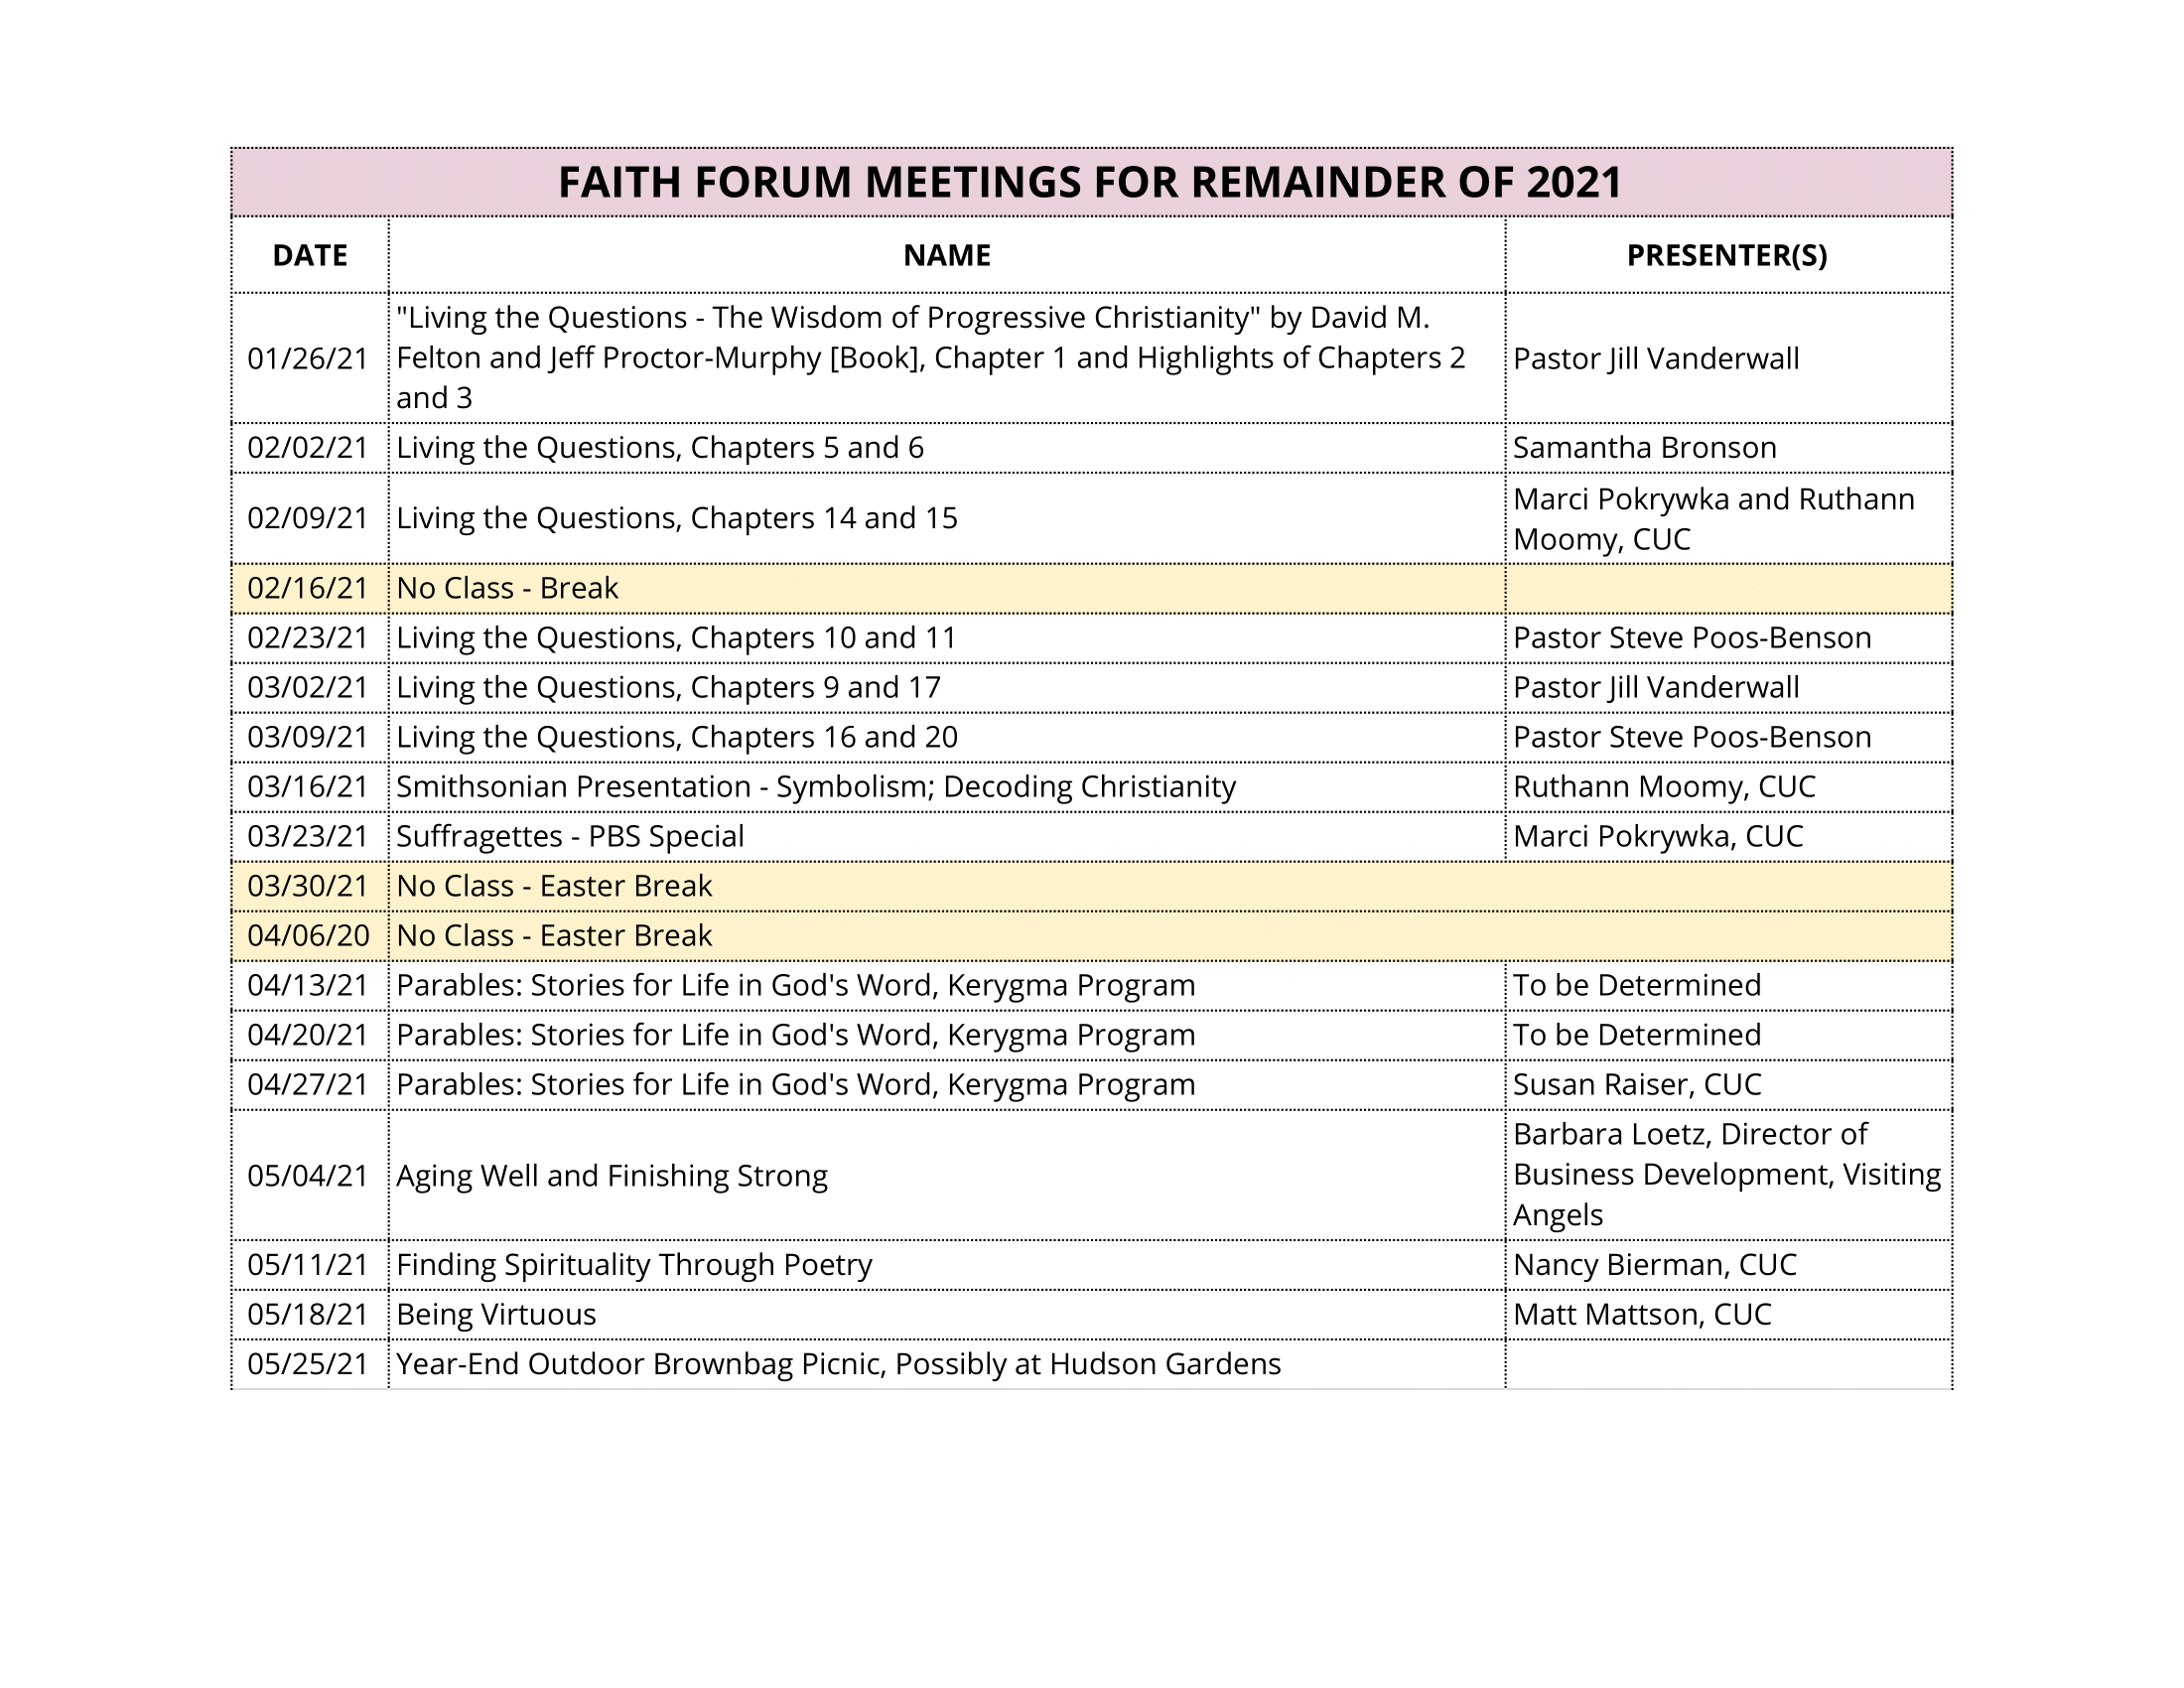 Faith Forum 2021 Calendar